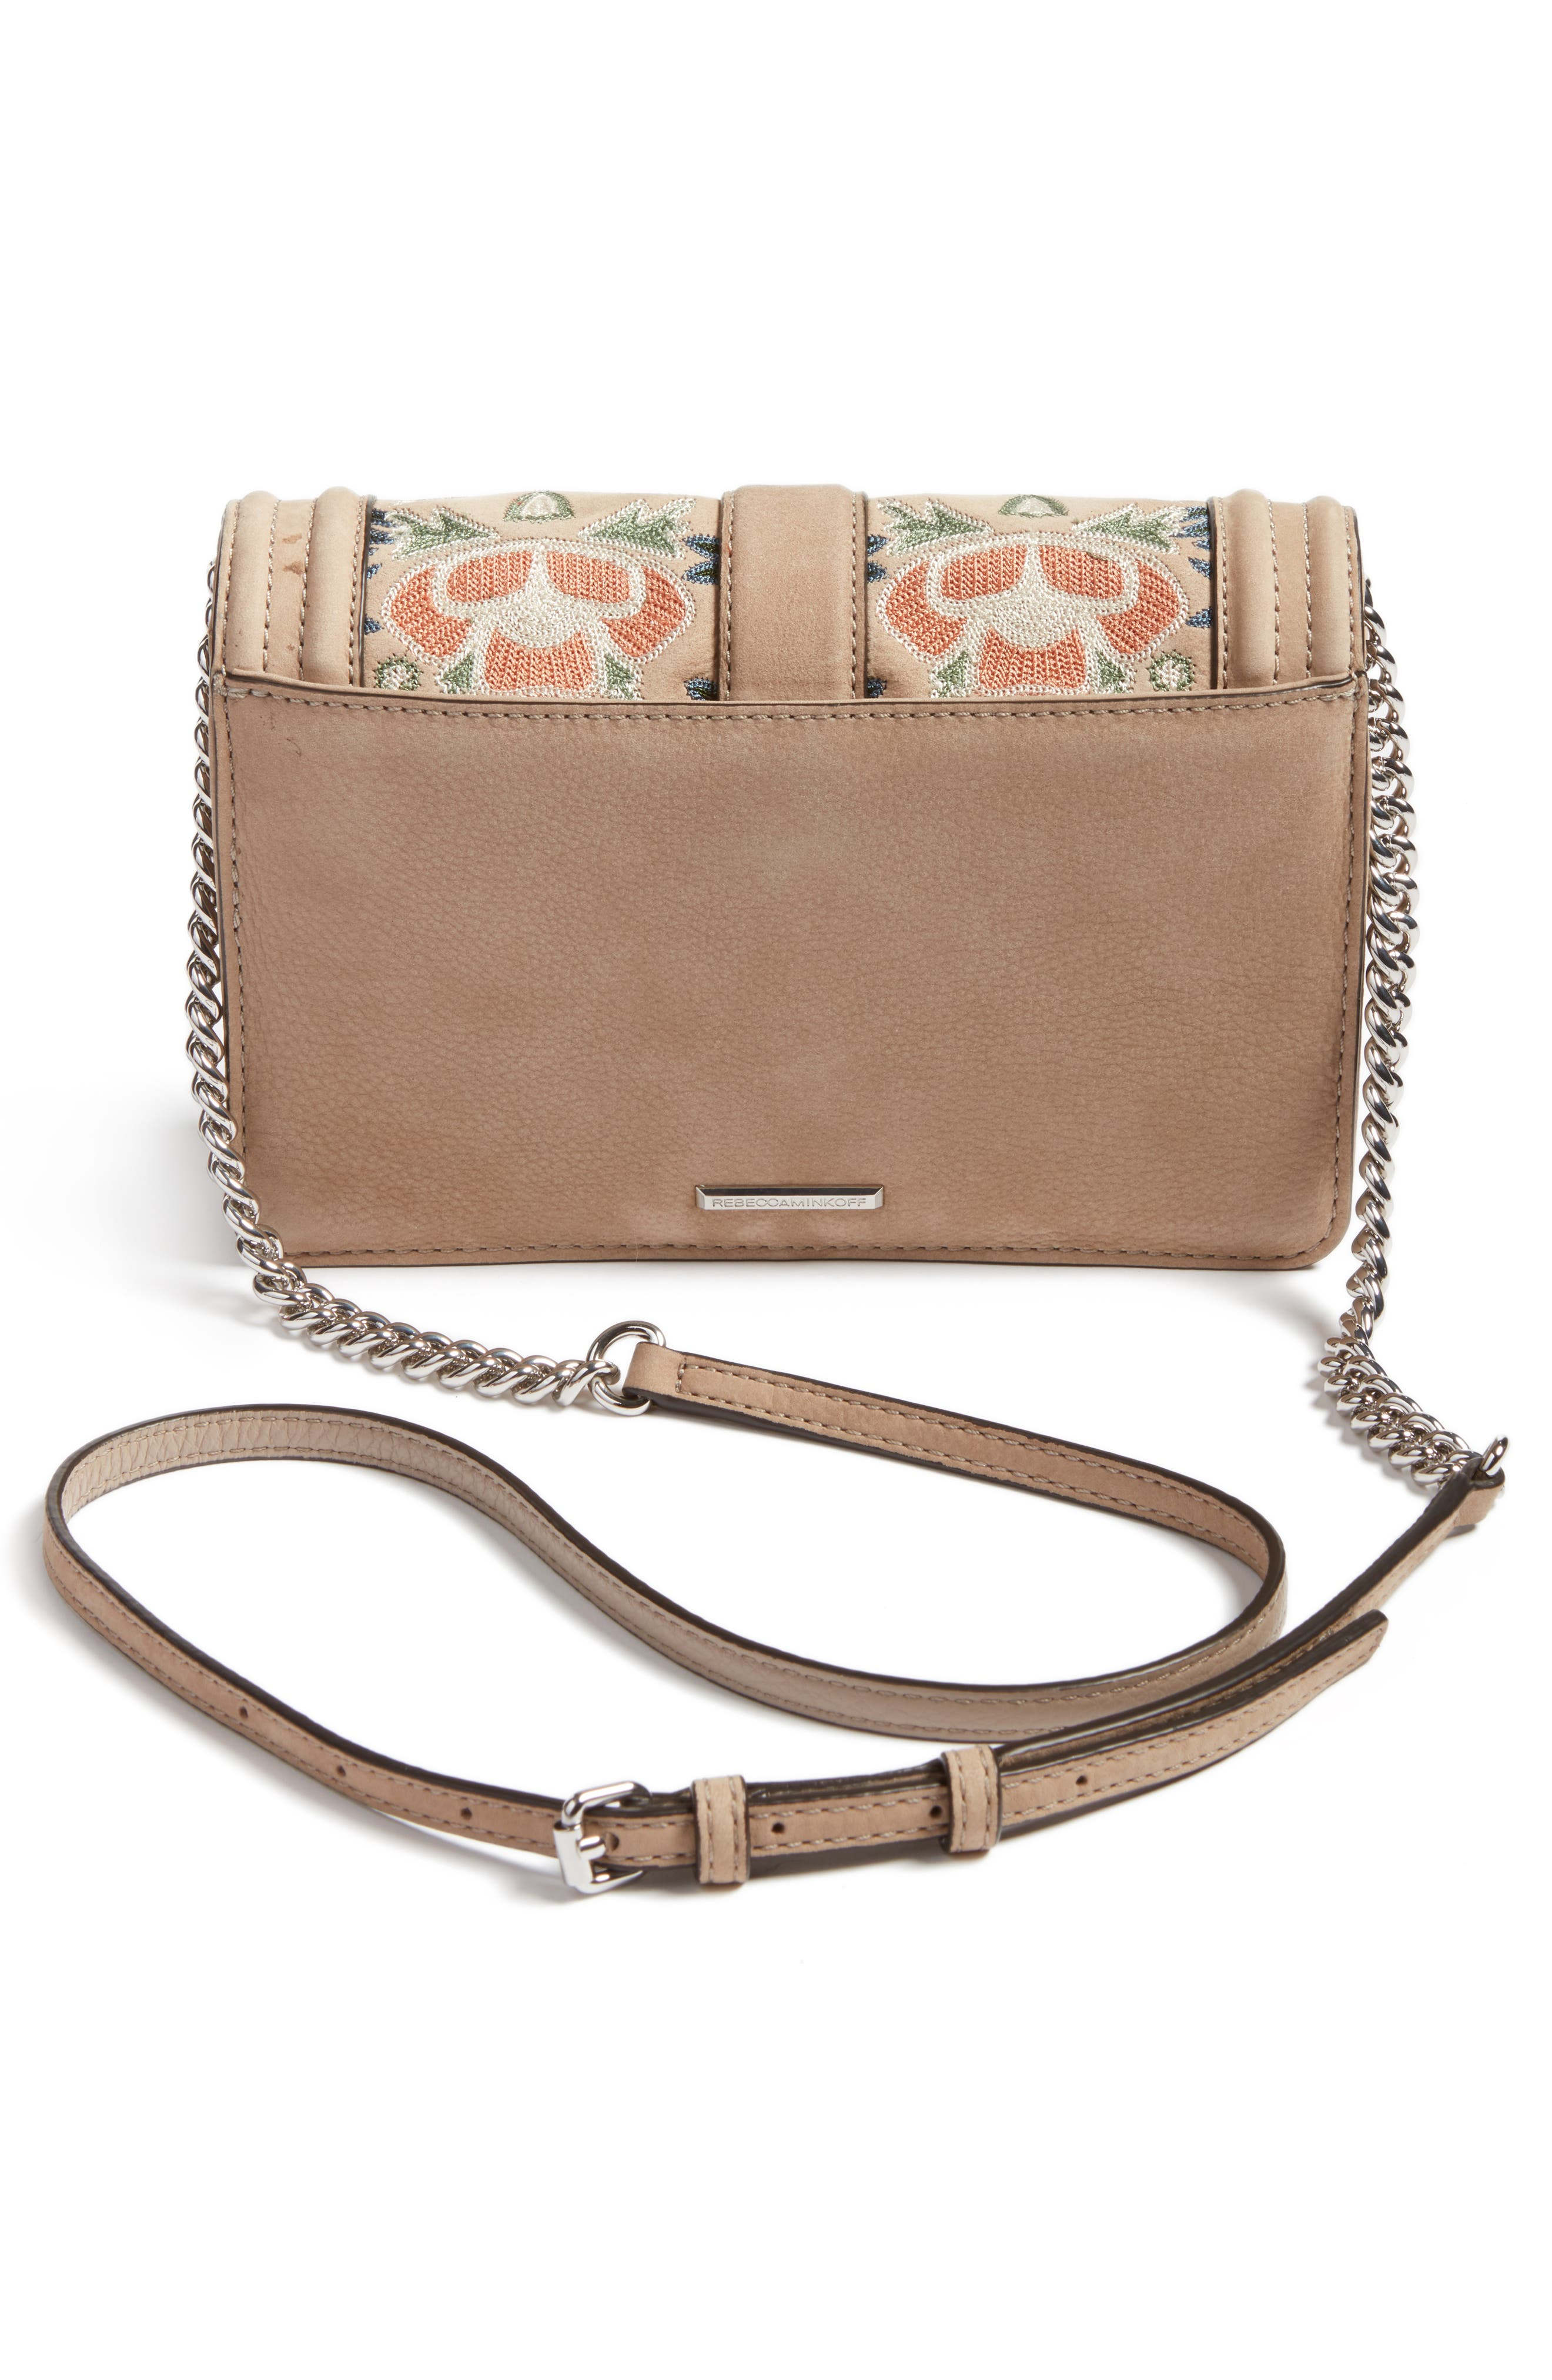 Alternate Image 3  - Rebecca Minkoff Small Love Embroidered Nubuck Crossbody Bag (Nordstrom Exclusive)